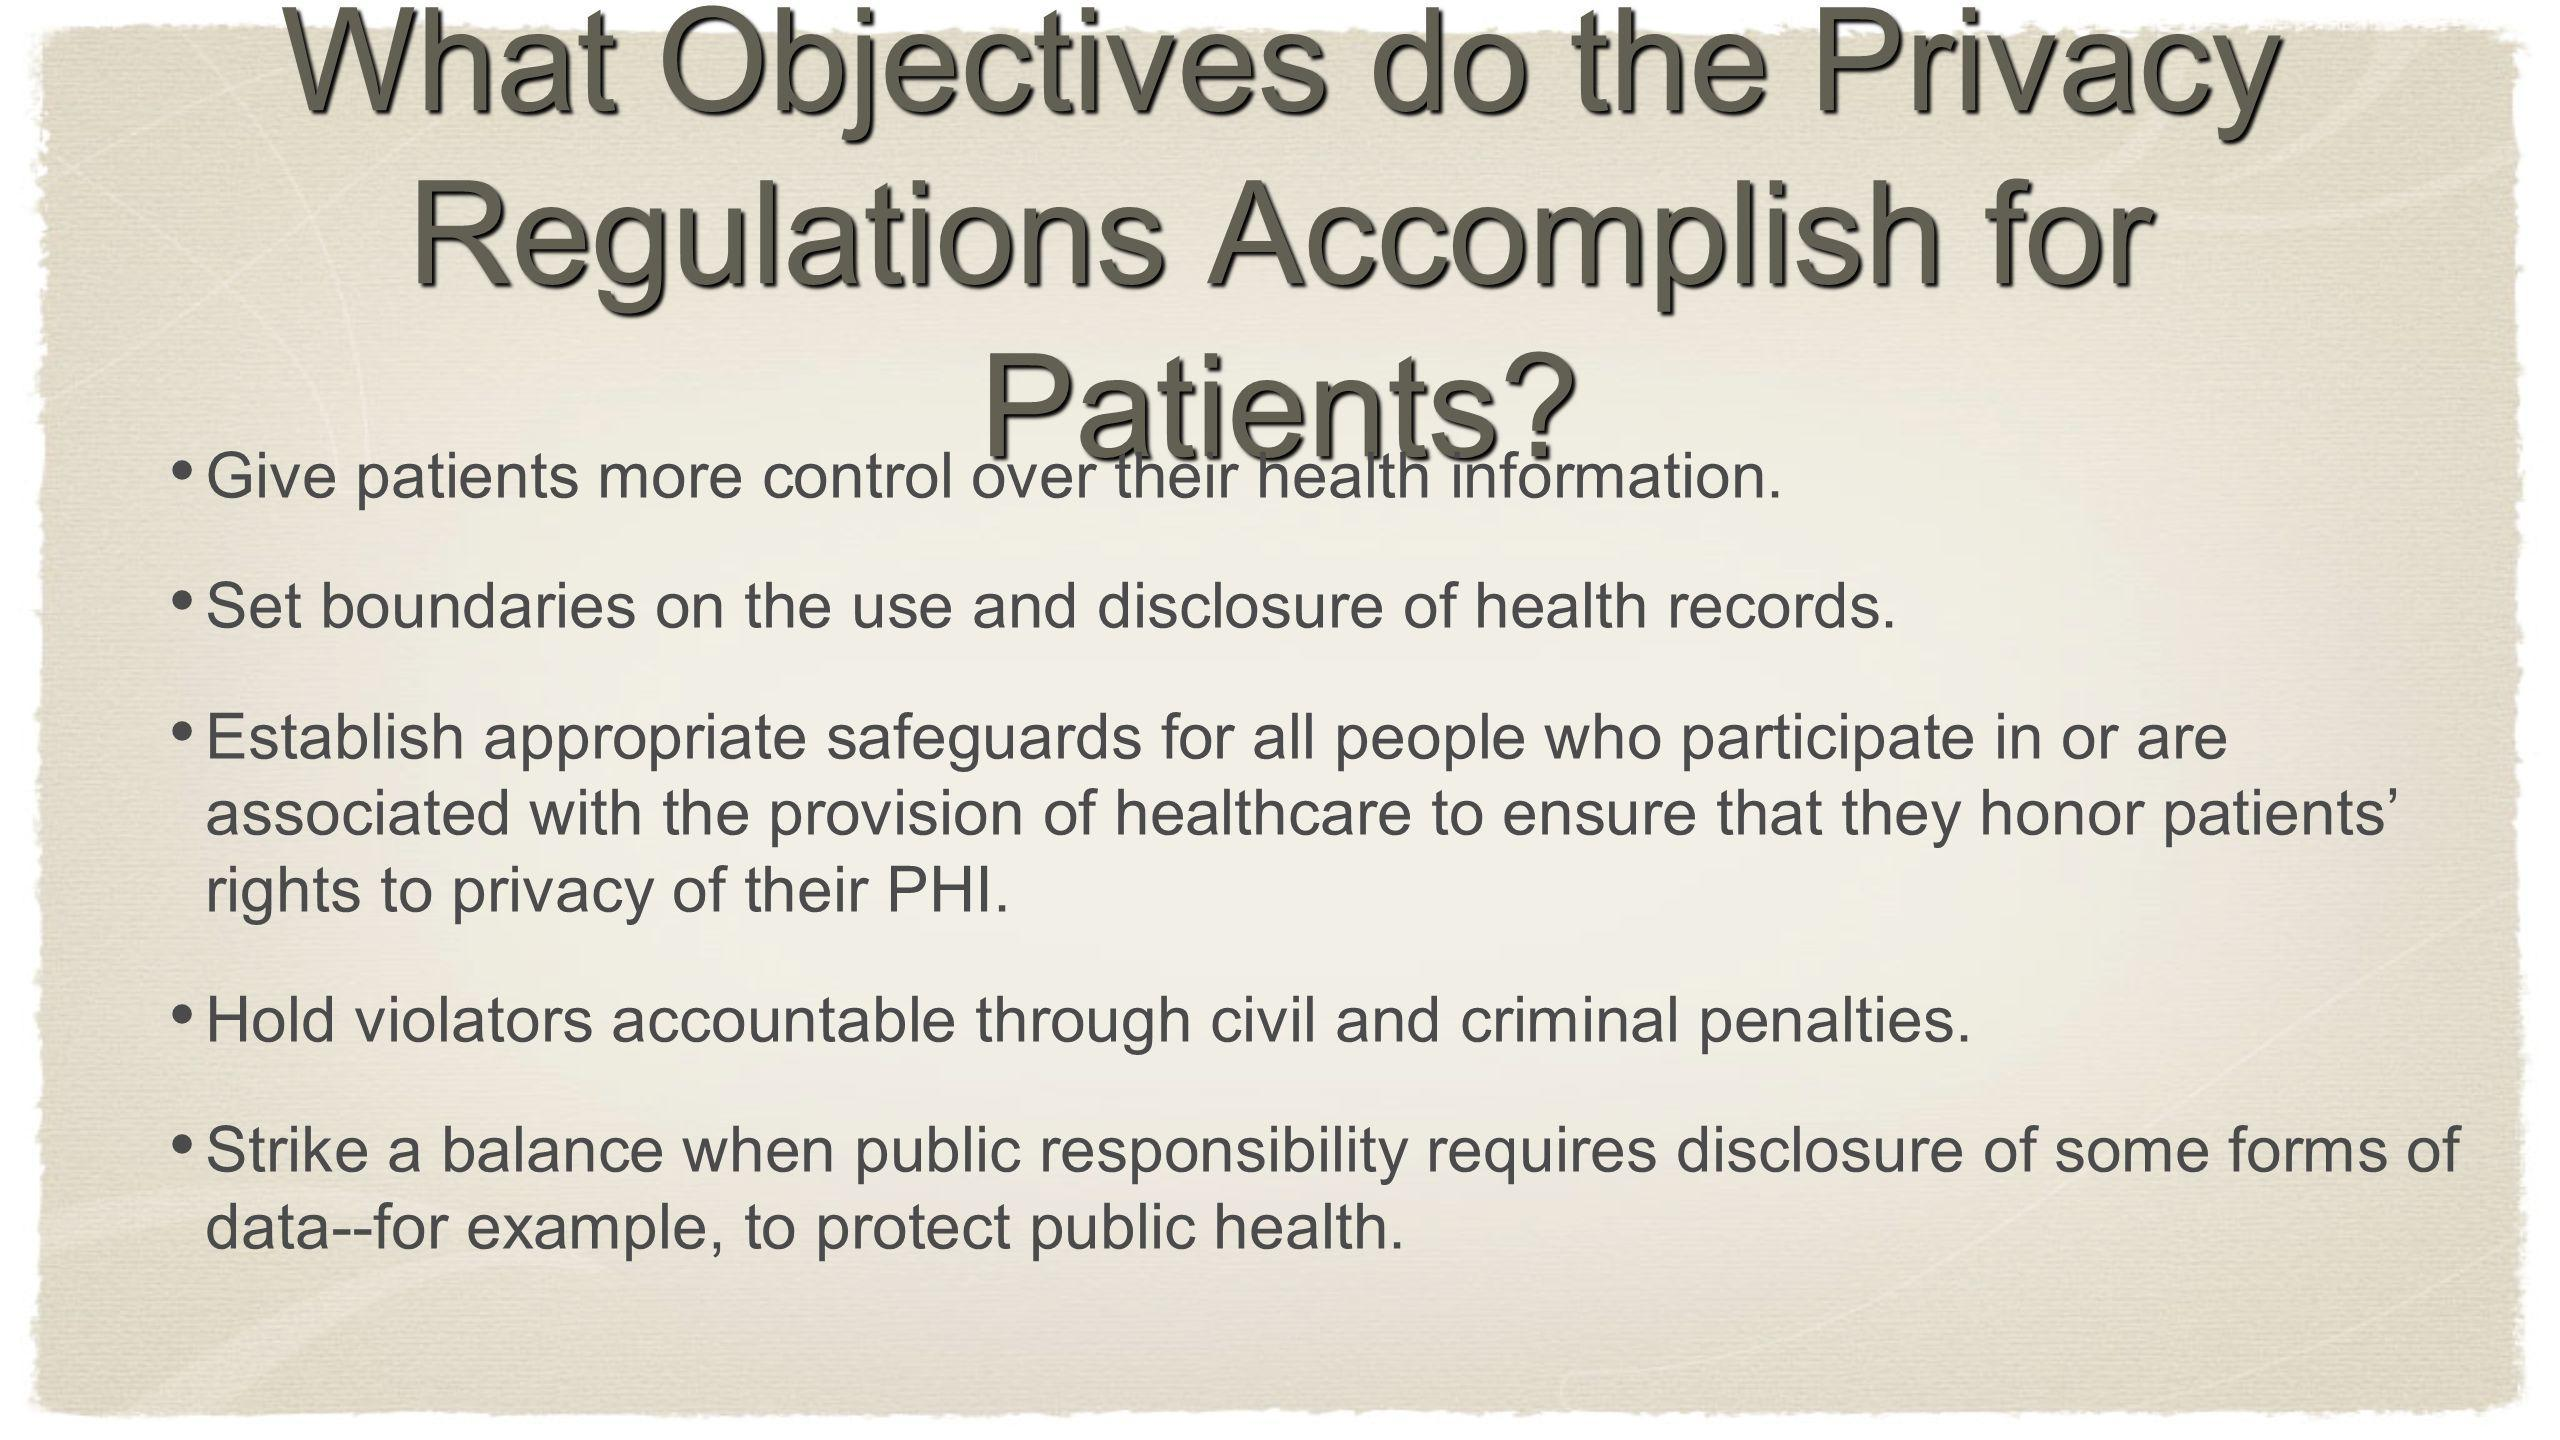 What Objectives do the Privacy Regulations Accomplish for Patients? Give patients more control over their health information. Set boundaries on the us